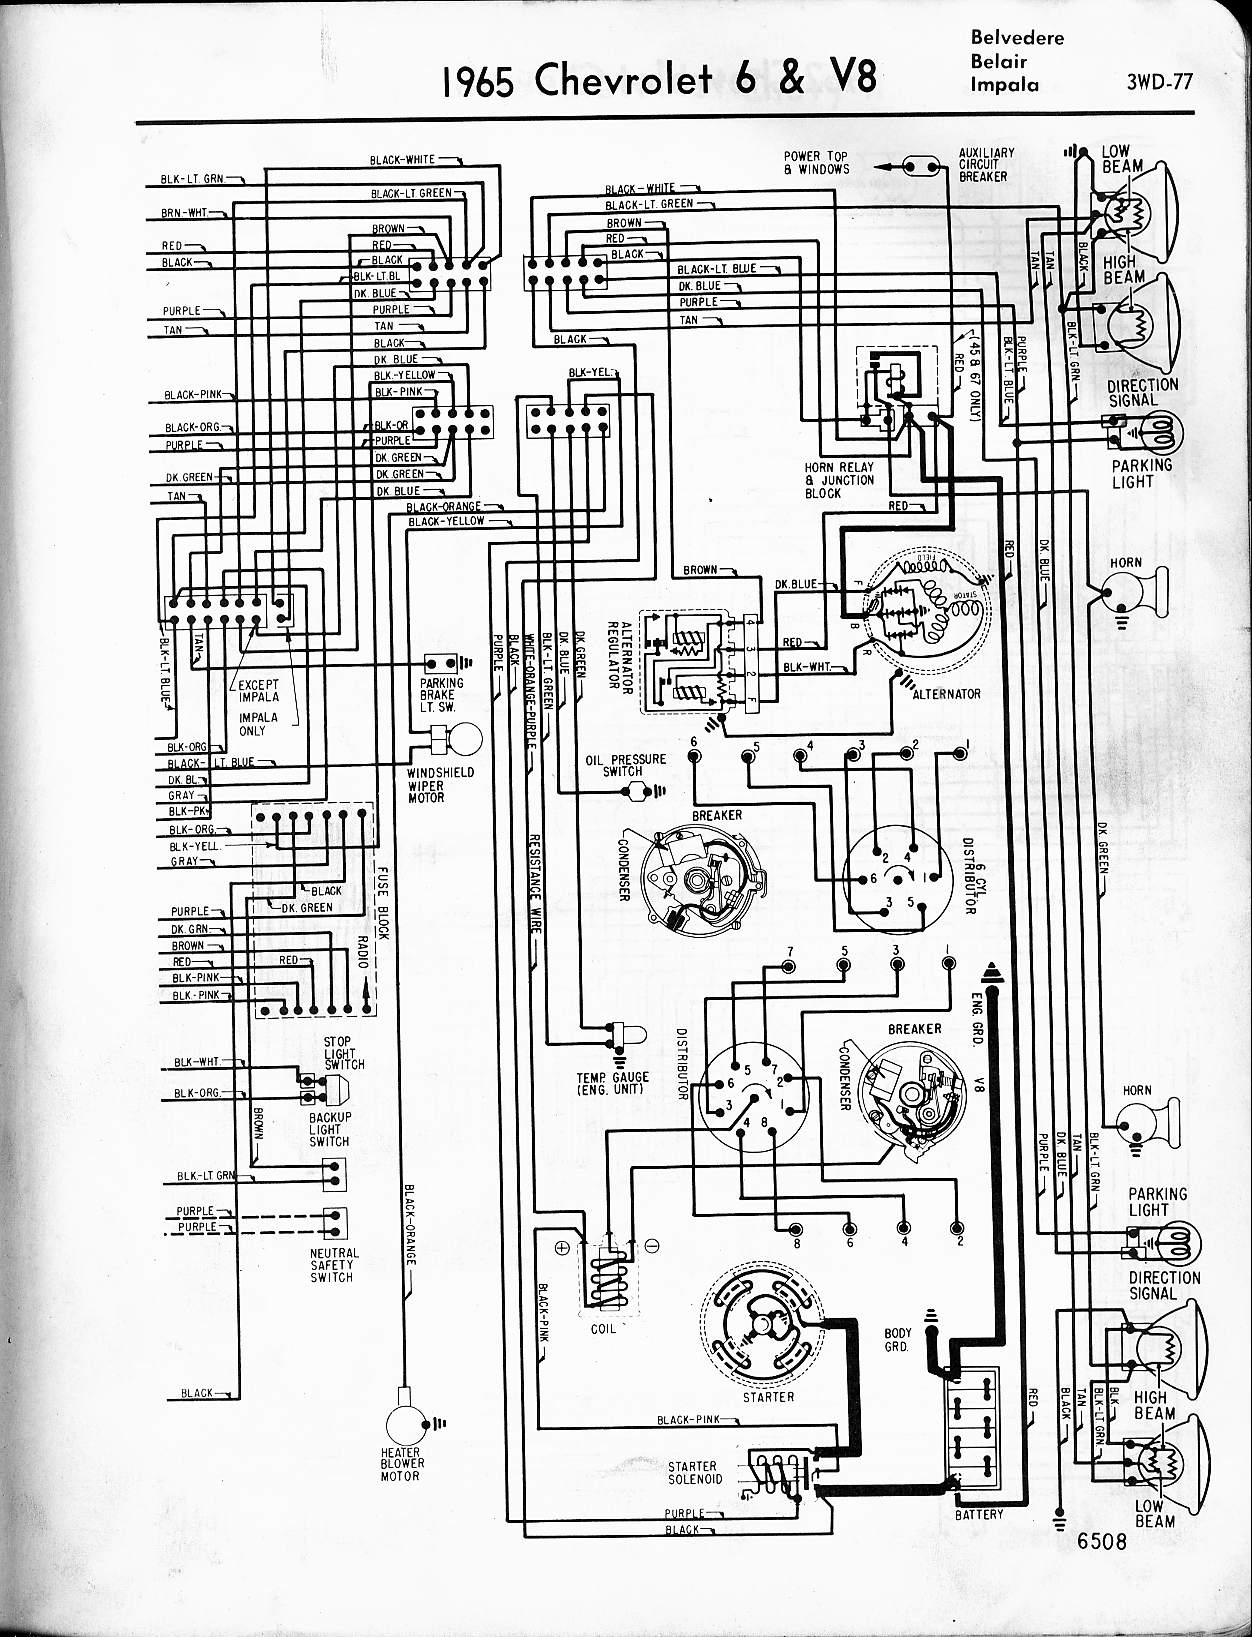 MWireChev65_3WD 077 1970 camaro wiring diagram android apps on google play wiring 1966 chevelle wiring harness painless at webbmarketing.co